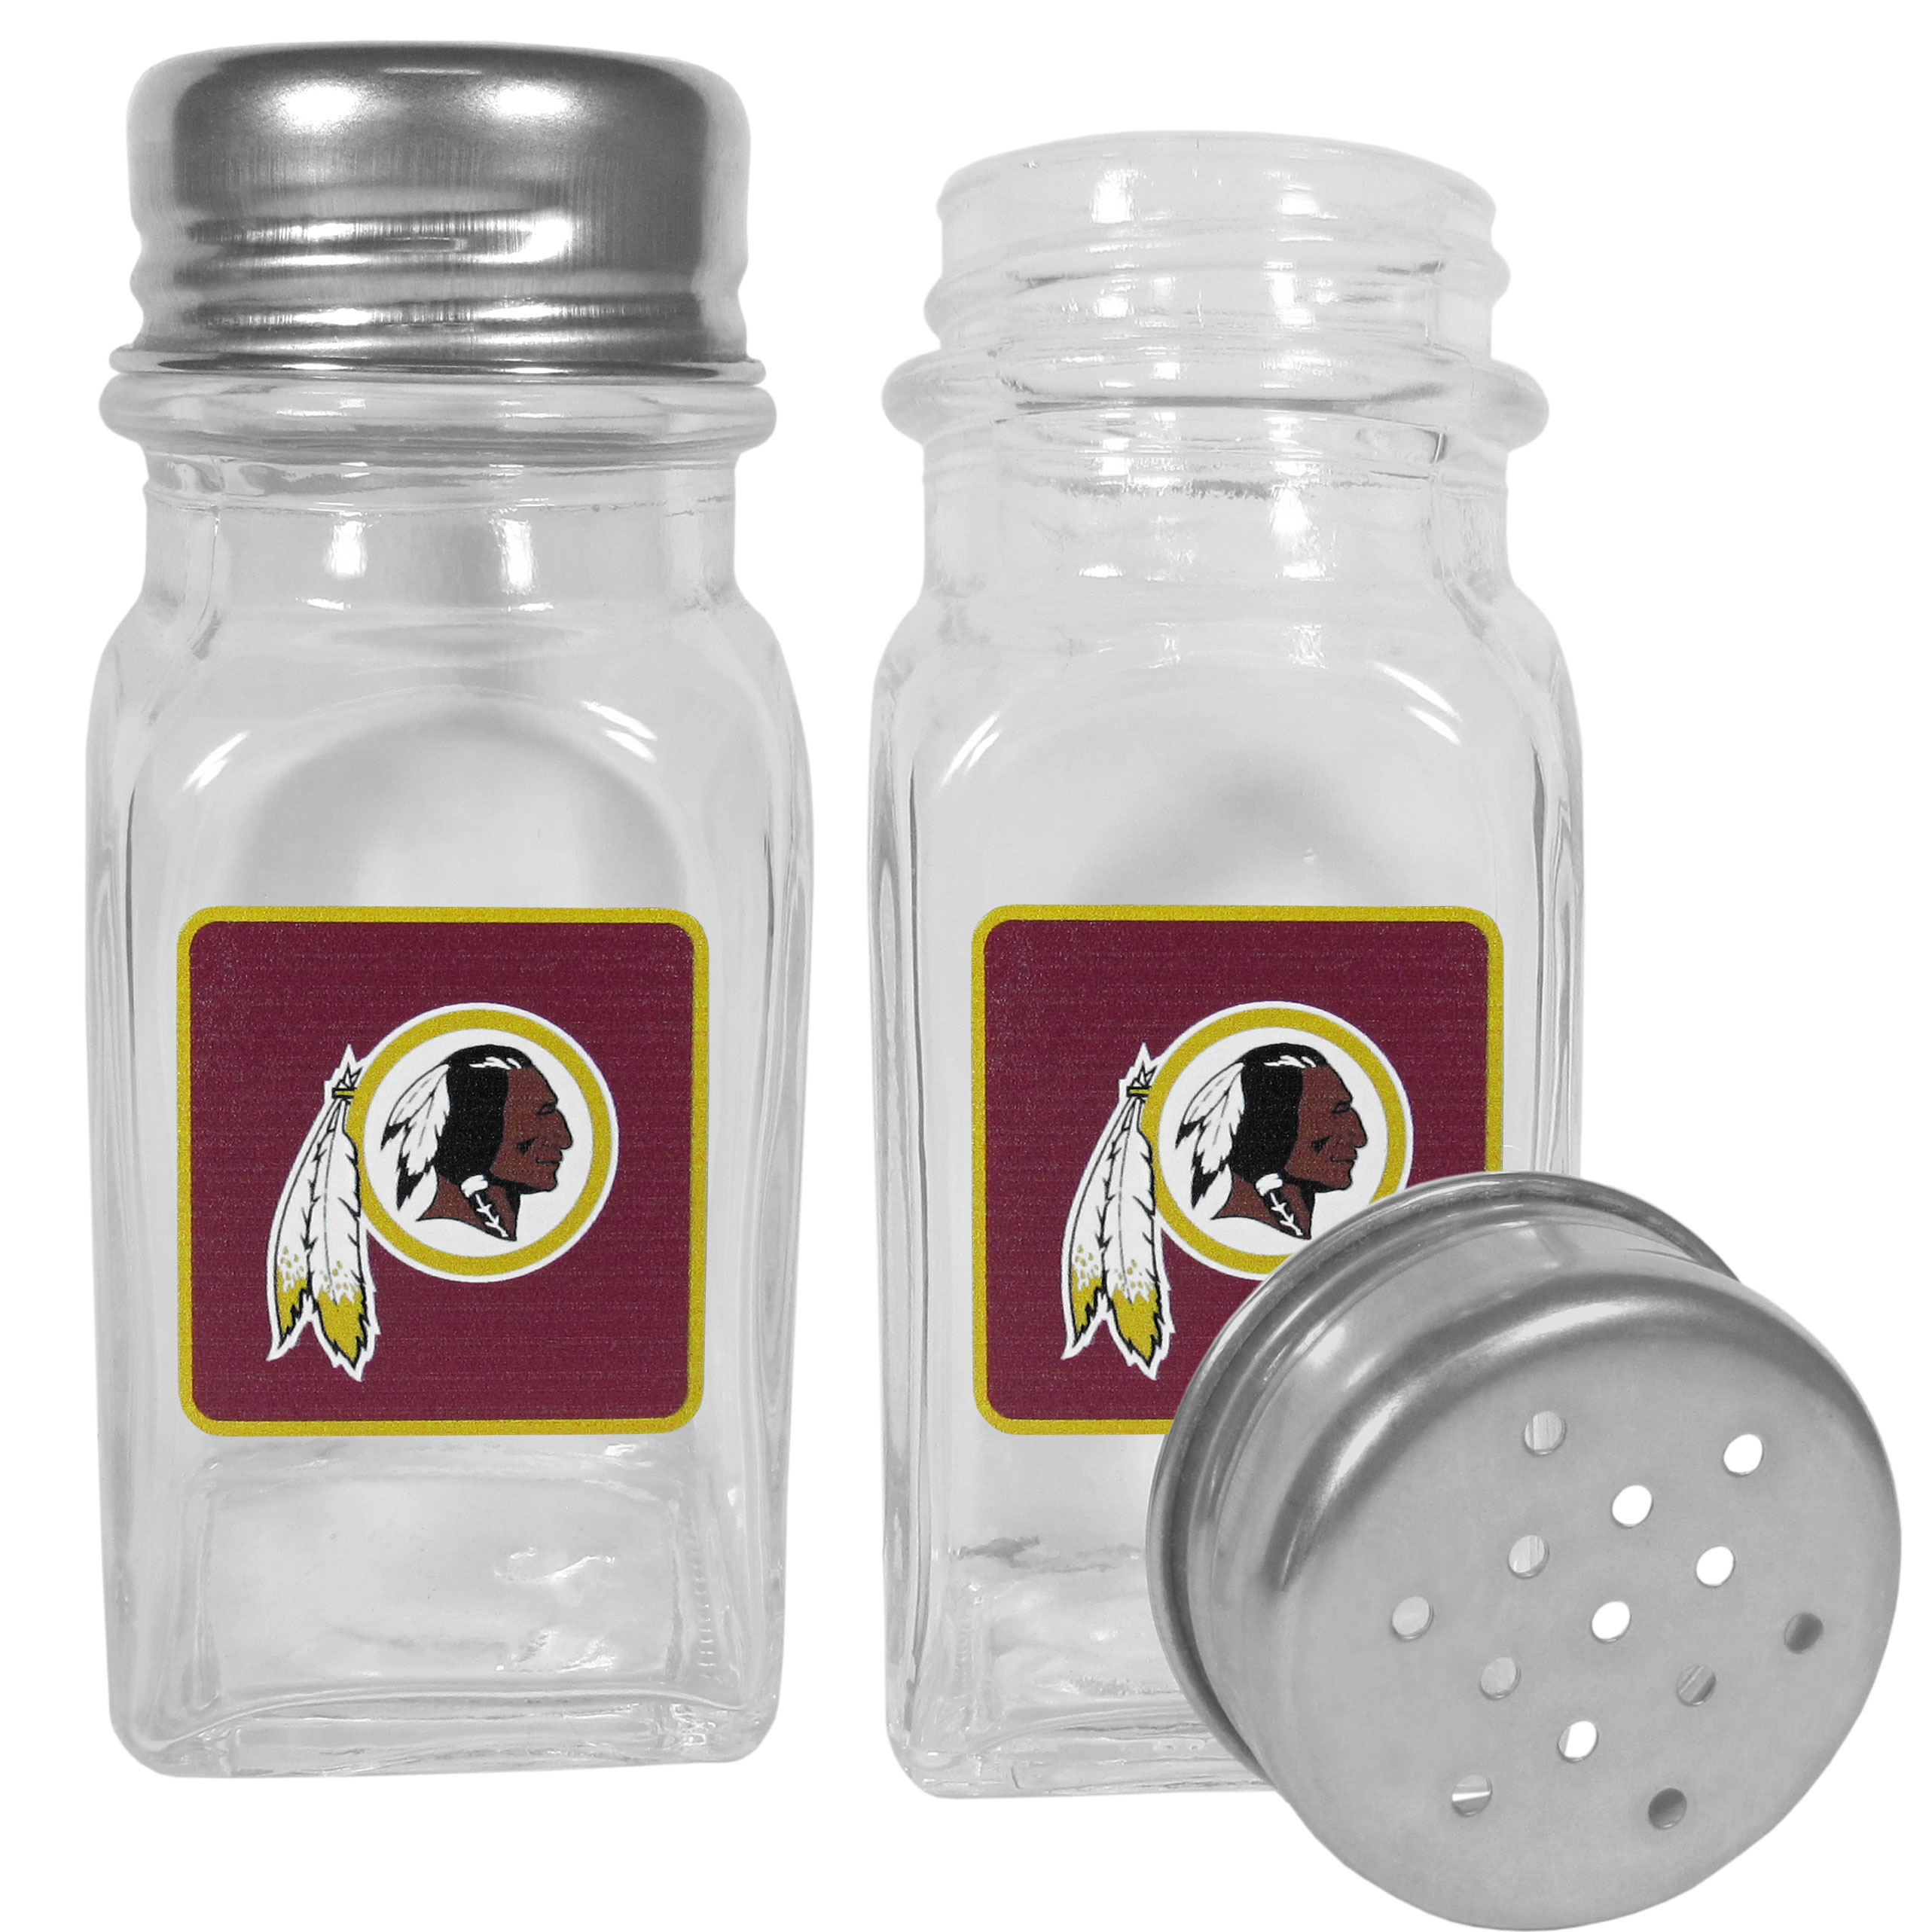 Washington Redskins Graphics Salt and Pepper Shaker - No tailgate party is complete without your Washington Redskins salt & pepper shakers featuring bright team logos. The diner replica salt and pepper shakers are glass with screw top lids. These team shakers are a great grill accessory whether you are barbecuing on the patio, picnicing or having a game day party.